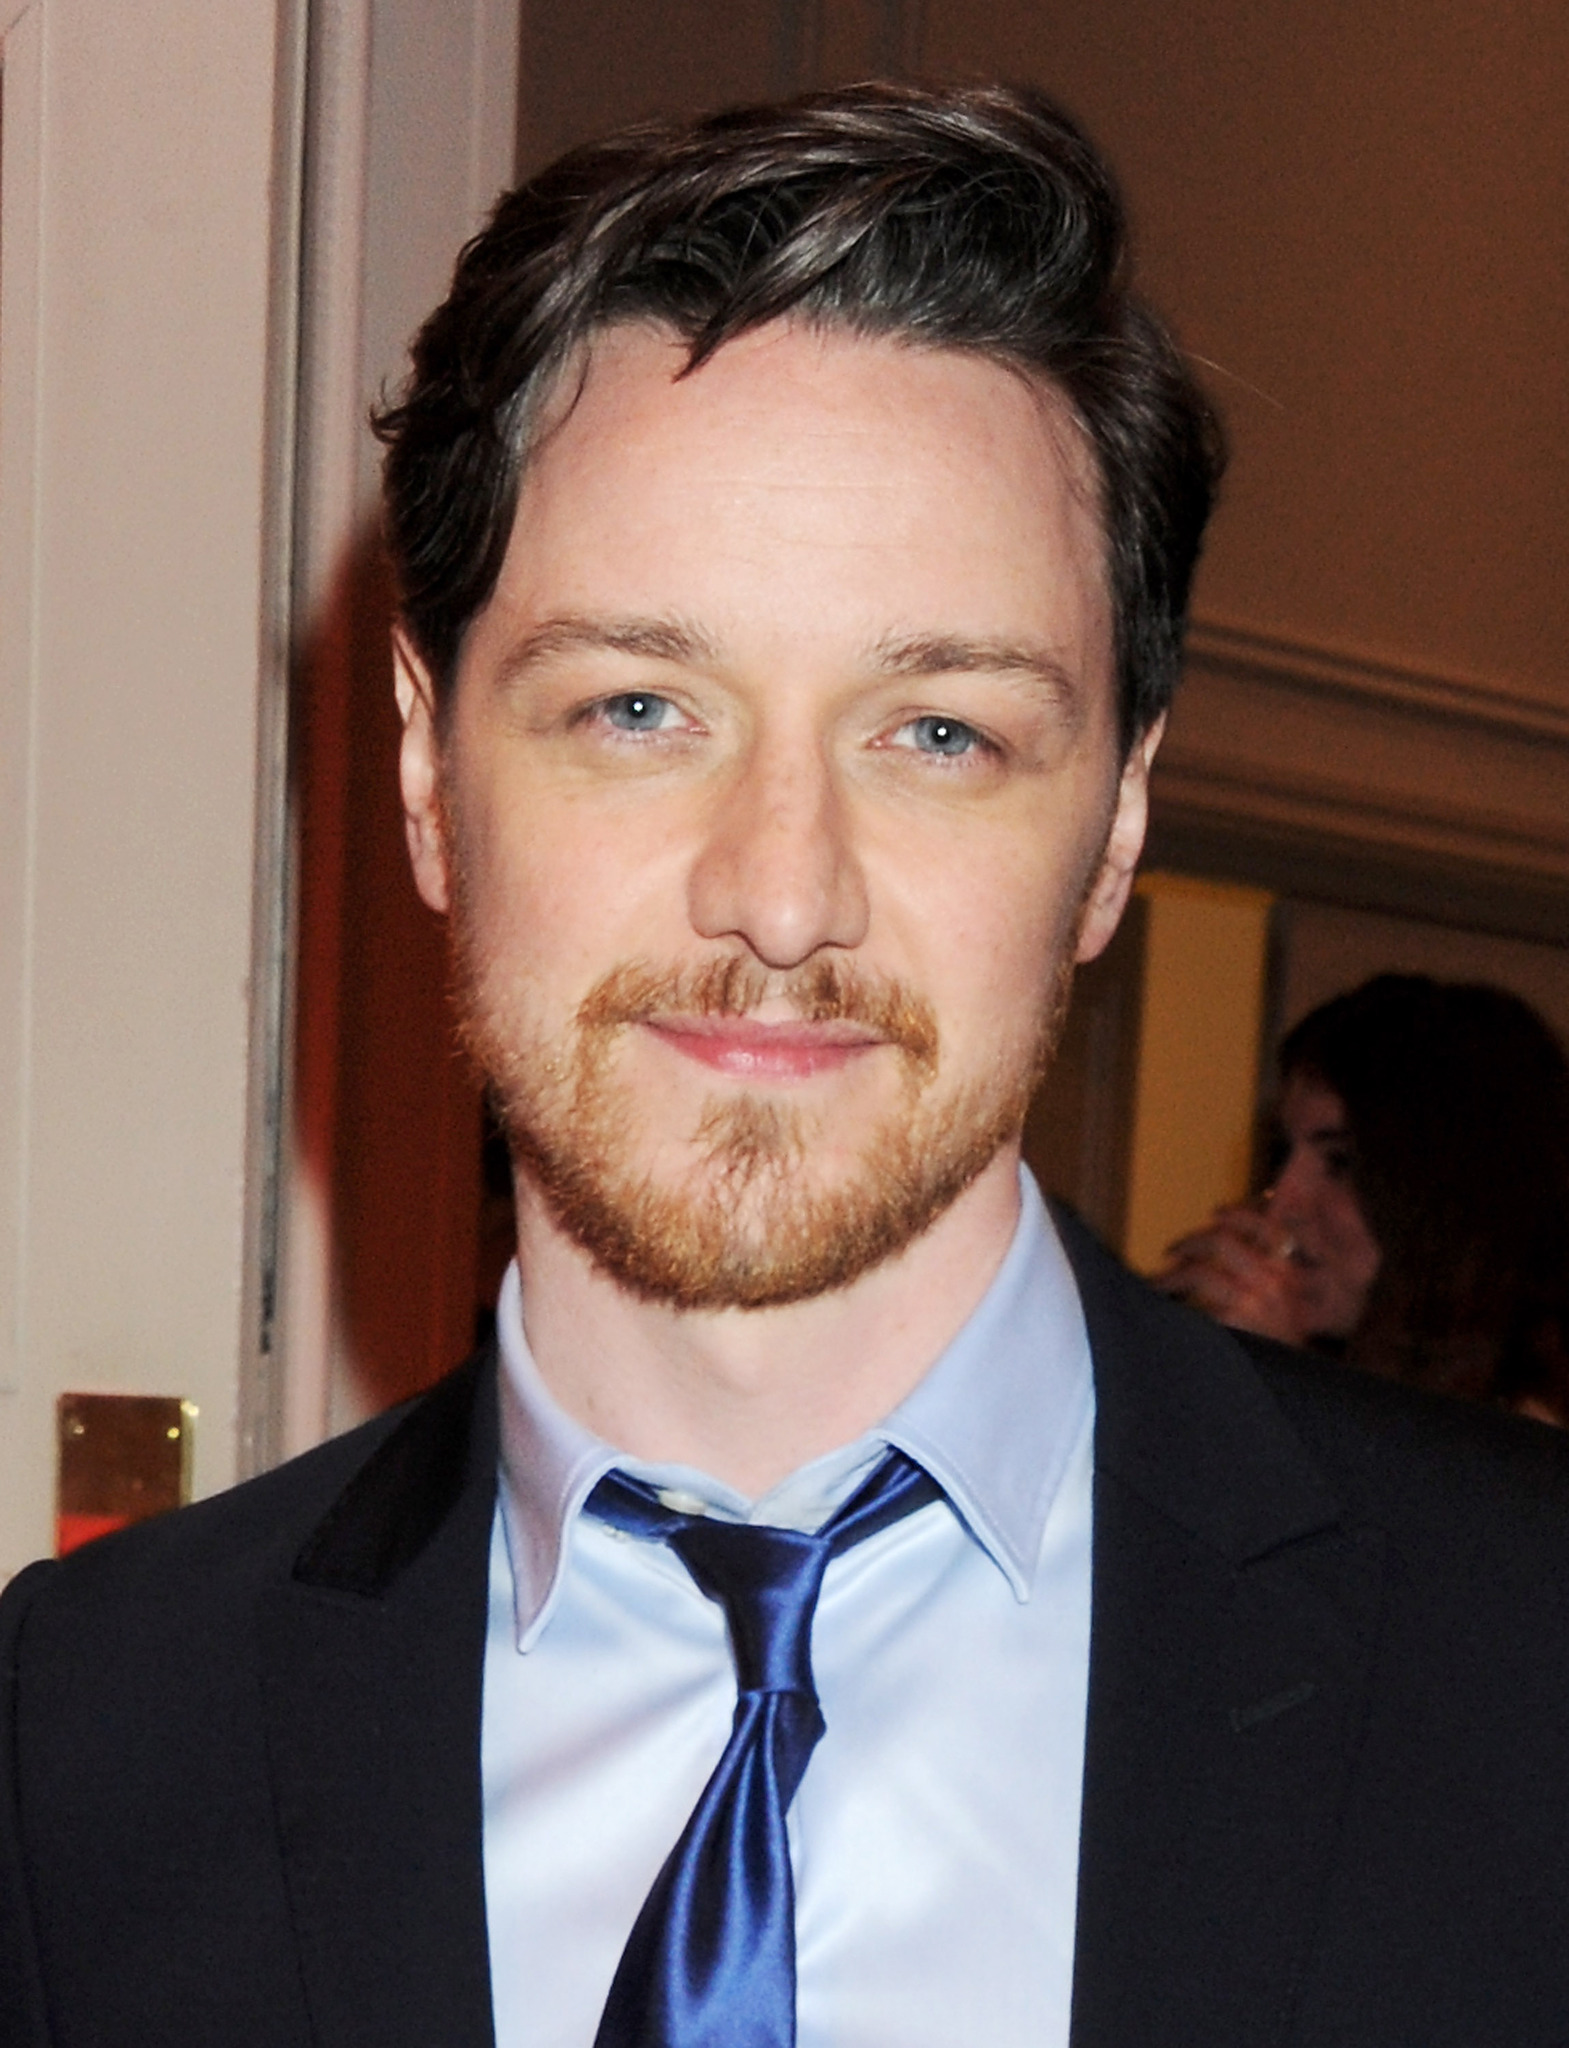 James McAvoy (born 1979) nude photos 2019